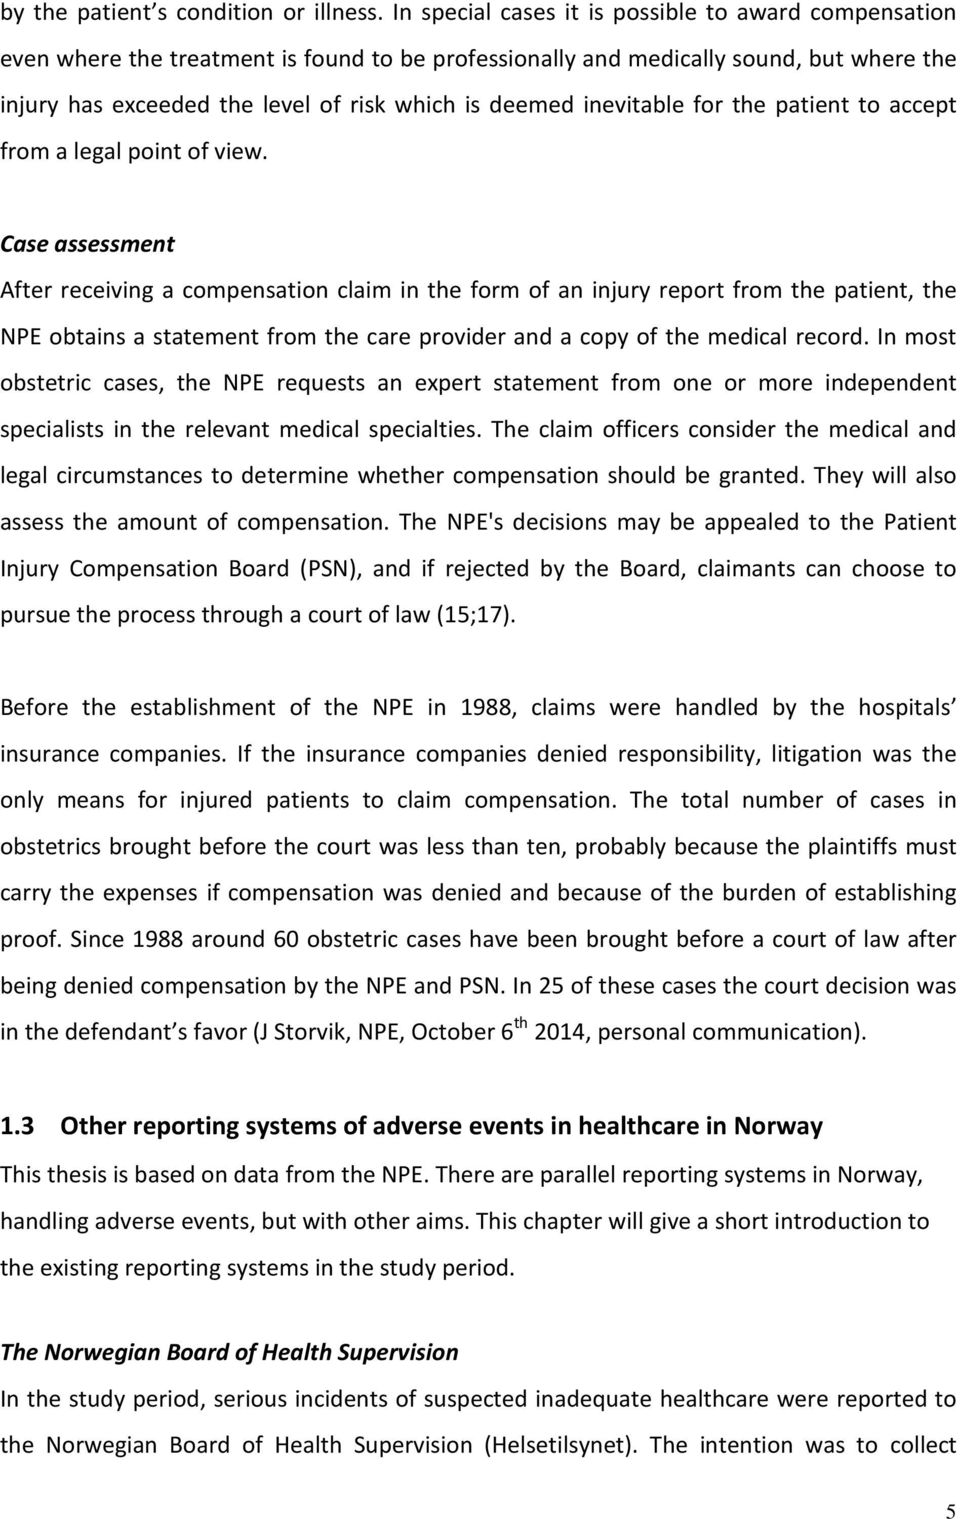 Claims for compensation after alleged birth injury in Norway